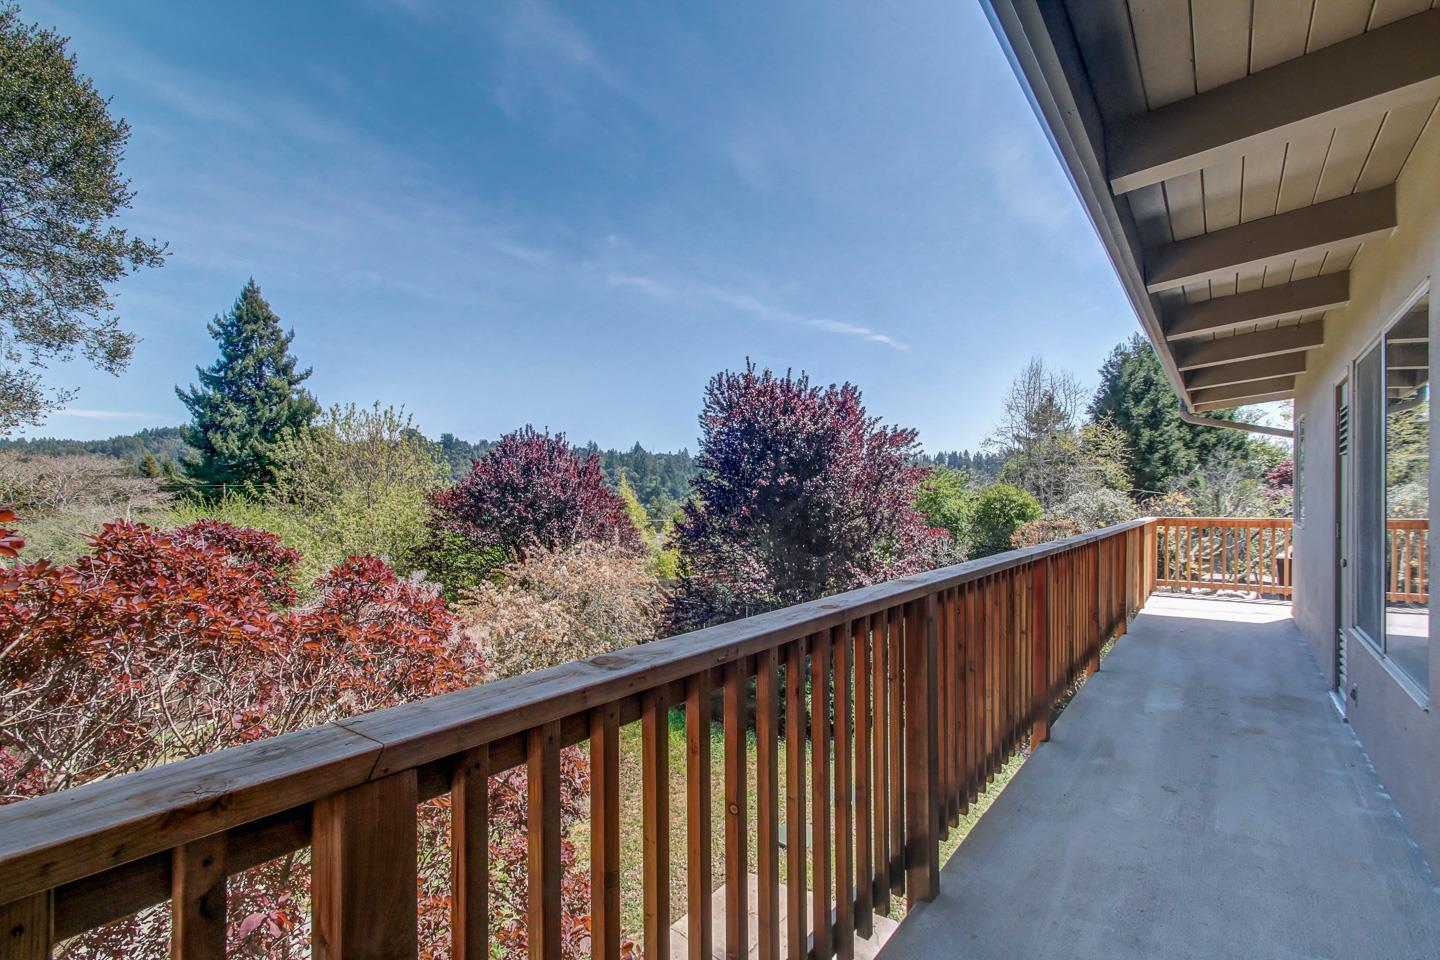 300 La Cuesta Drive Scotts Valley, CA 95066 - MLS #: ML81700858